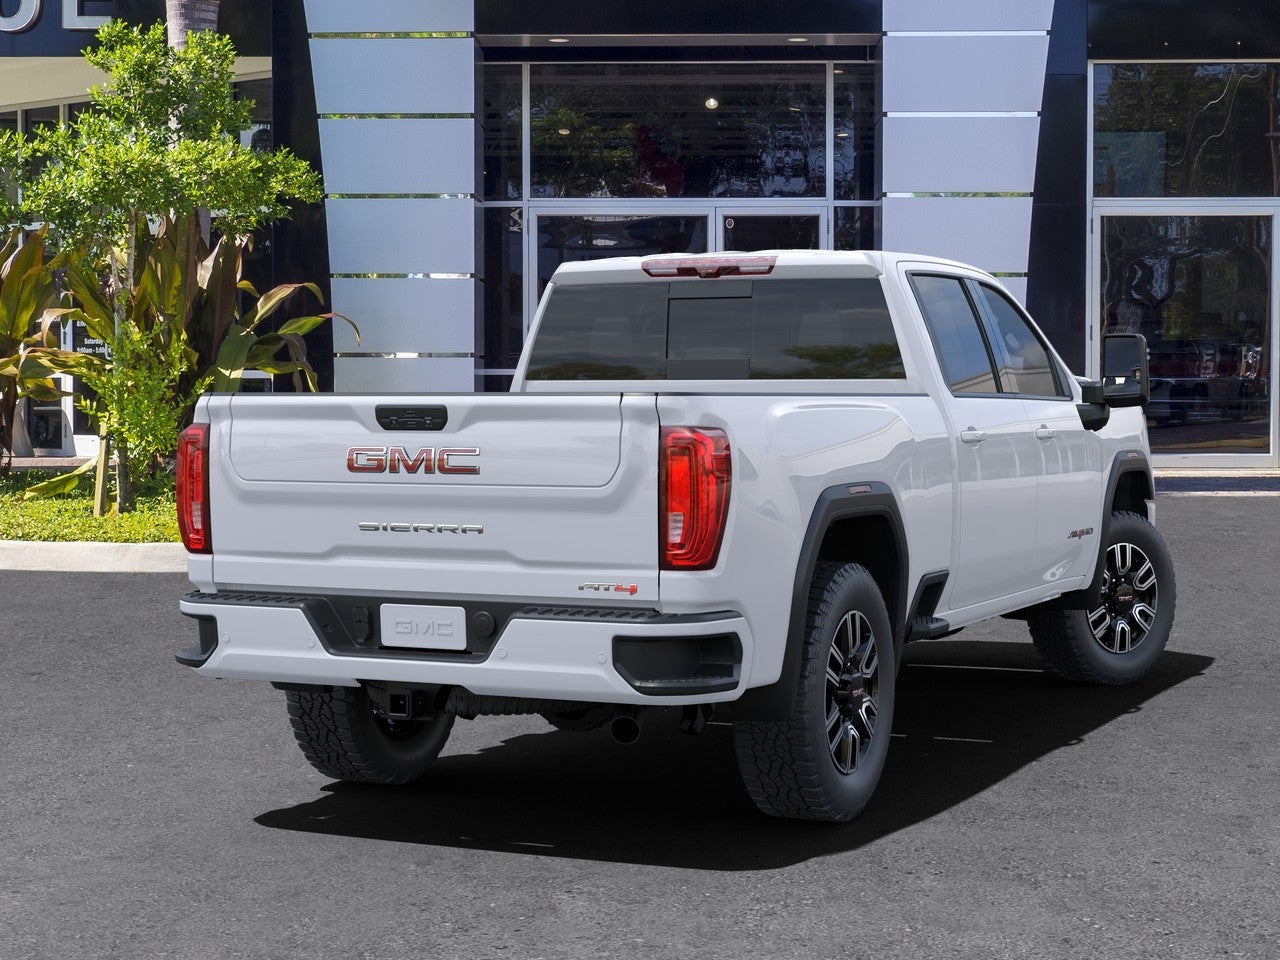 2021 GMC Sierra 2500 Crew Cab 4x4, Pickup #T21132 - photo 22